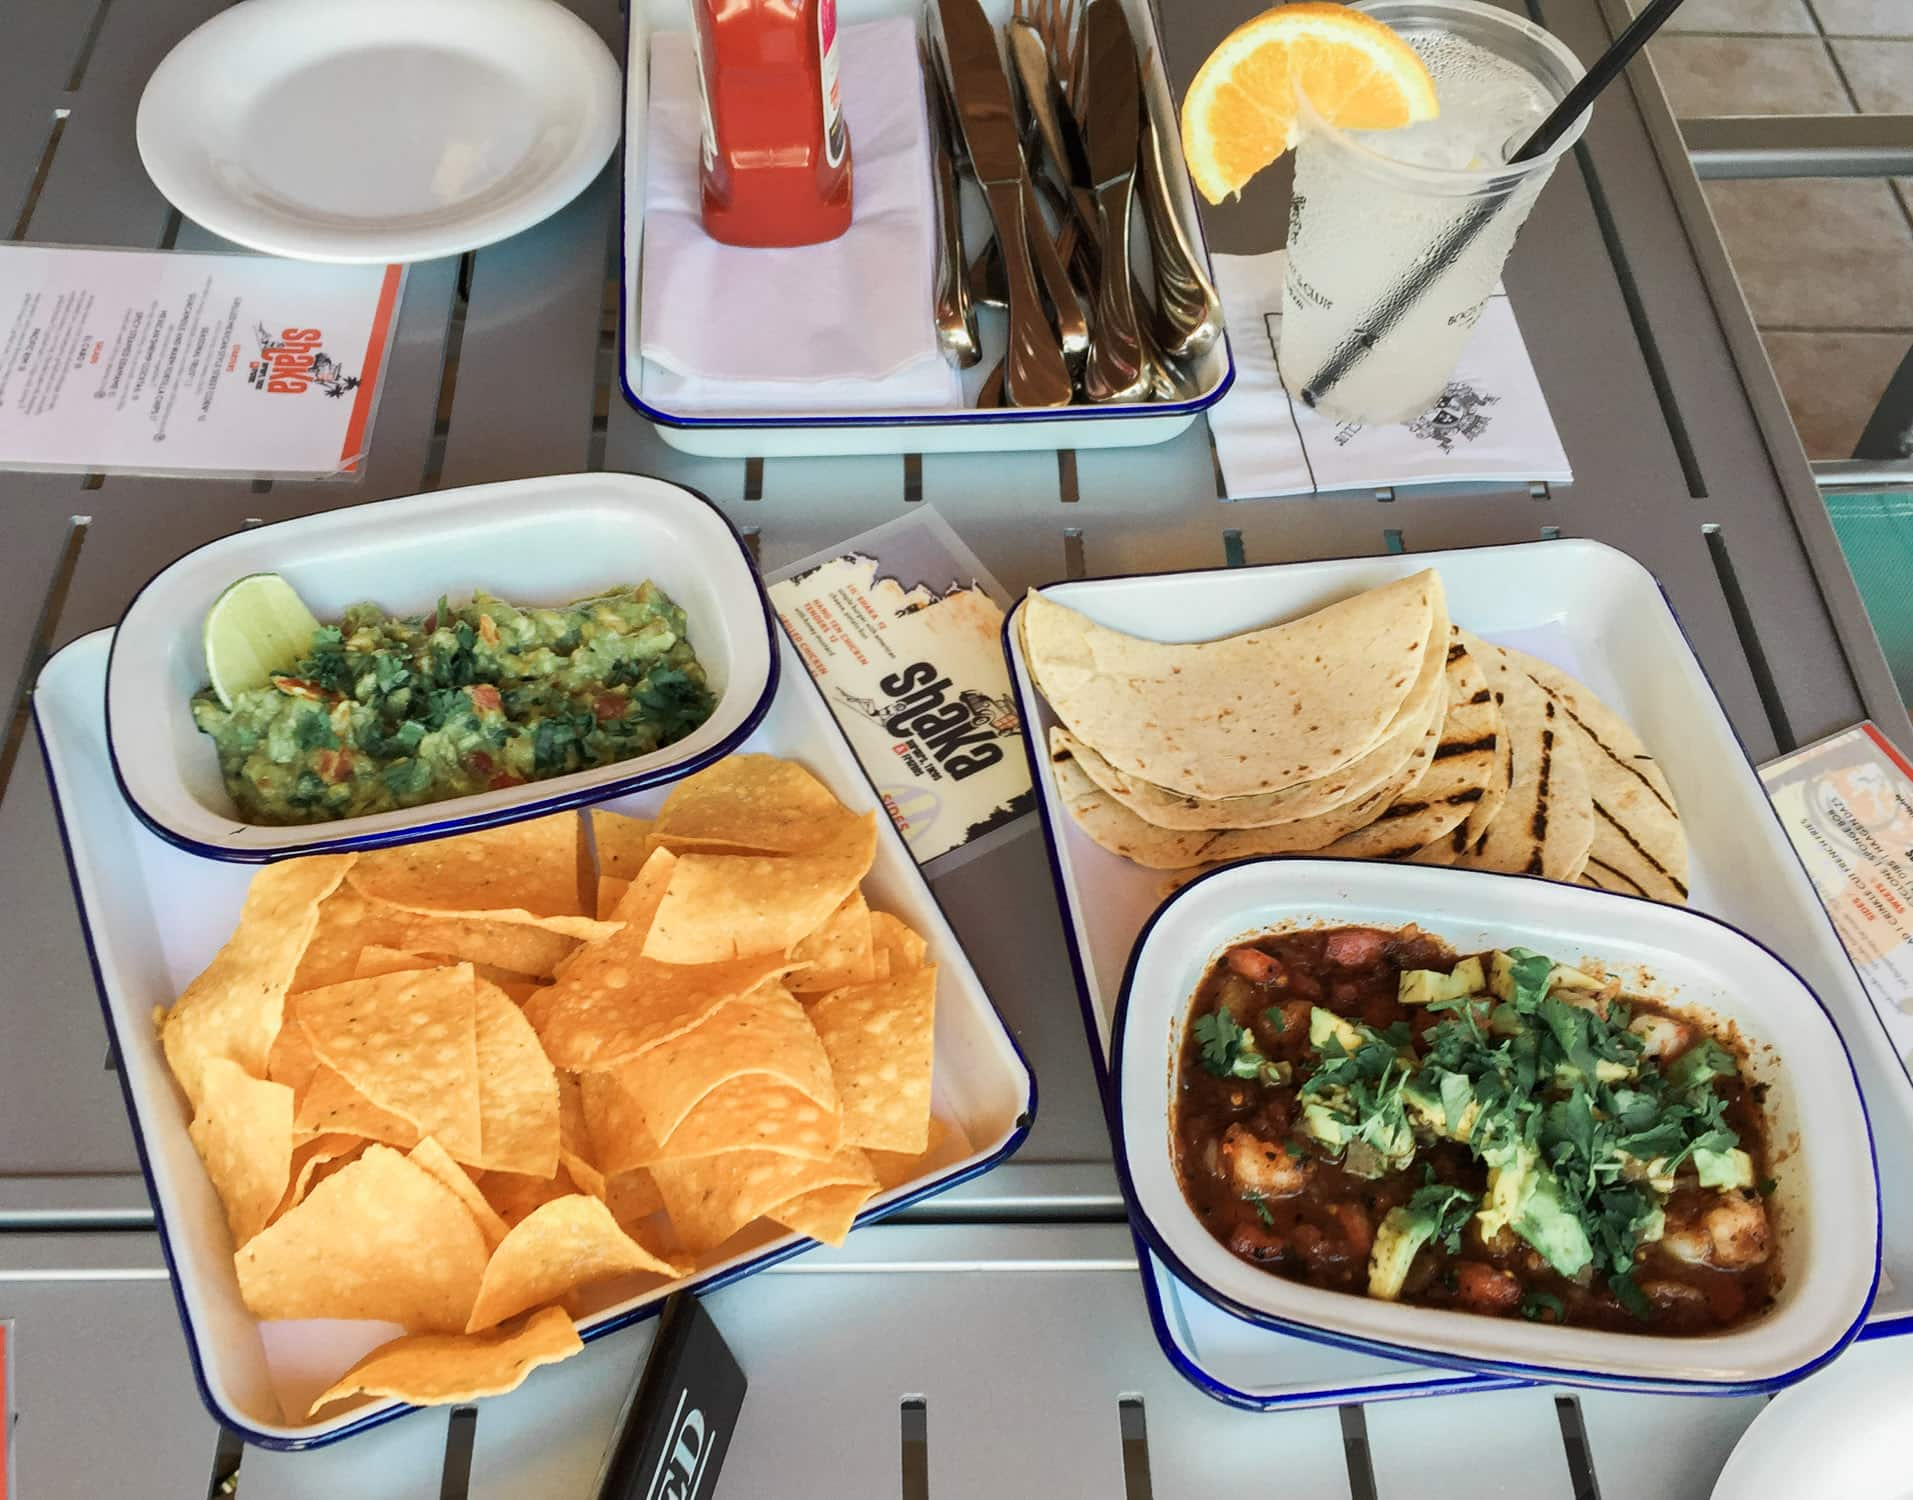 Shaka Bar and Grill restaurant review - including guacamole with chips, ceviche, and shrimp tacos + A full review of the Boca Raton Resort & Club by blogger Ashley Brooke Nicholas